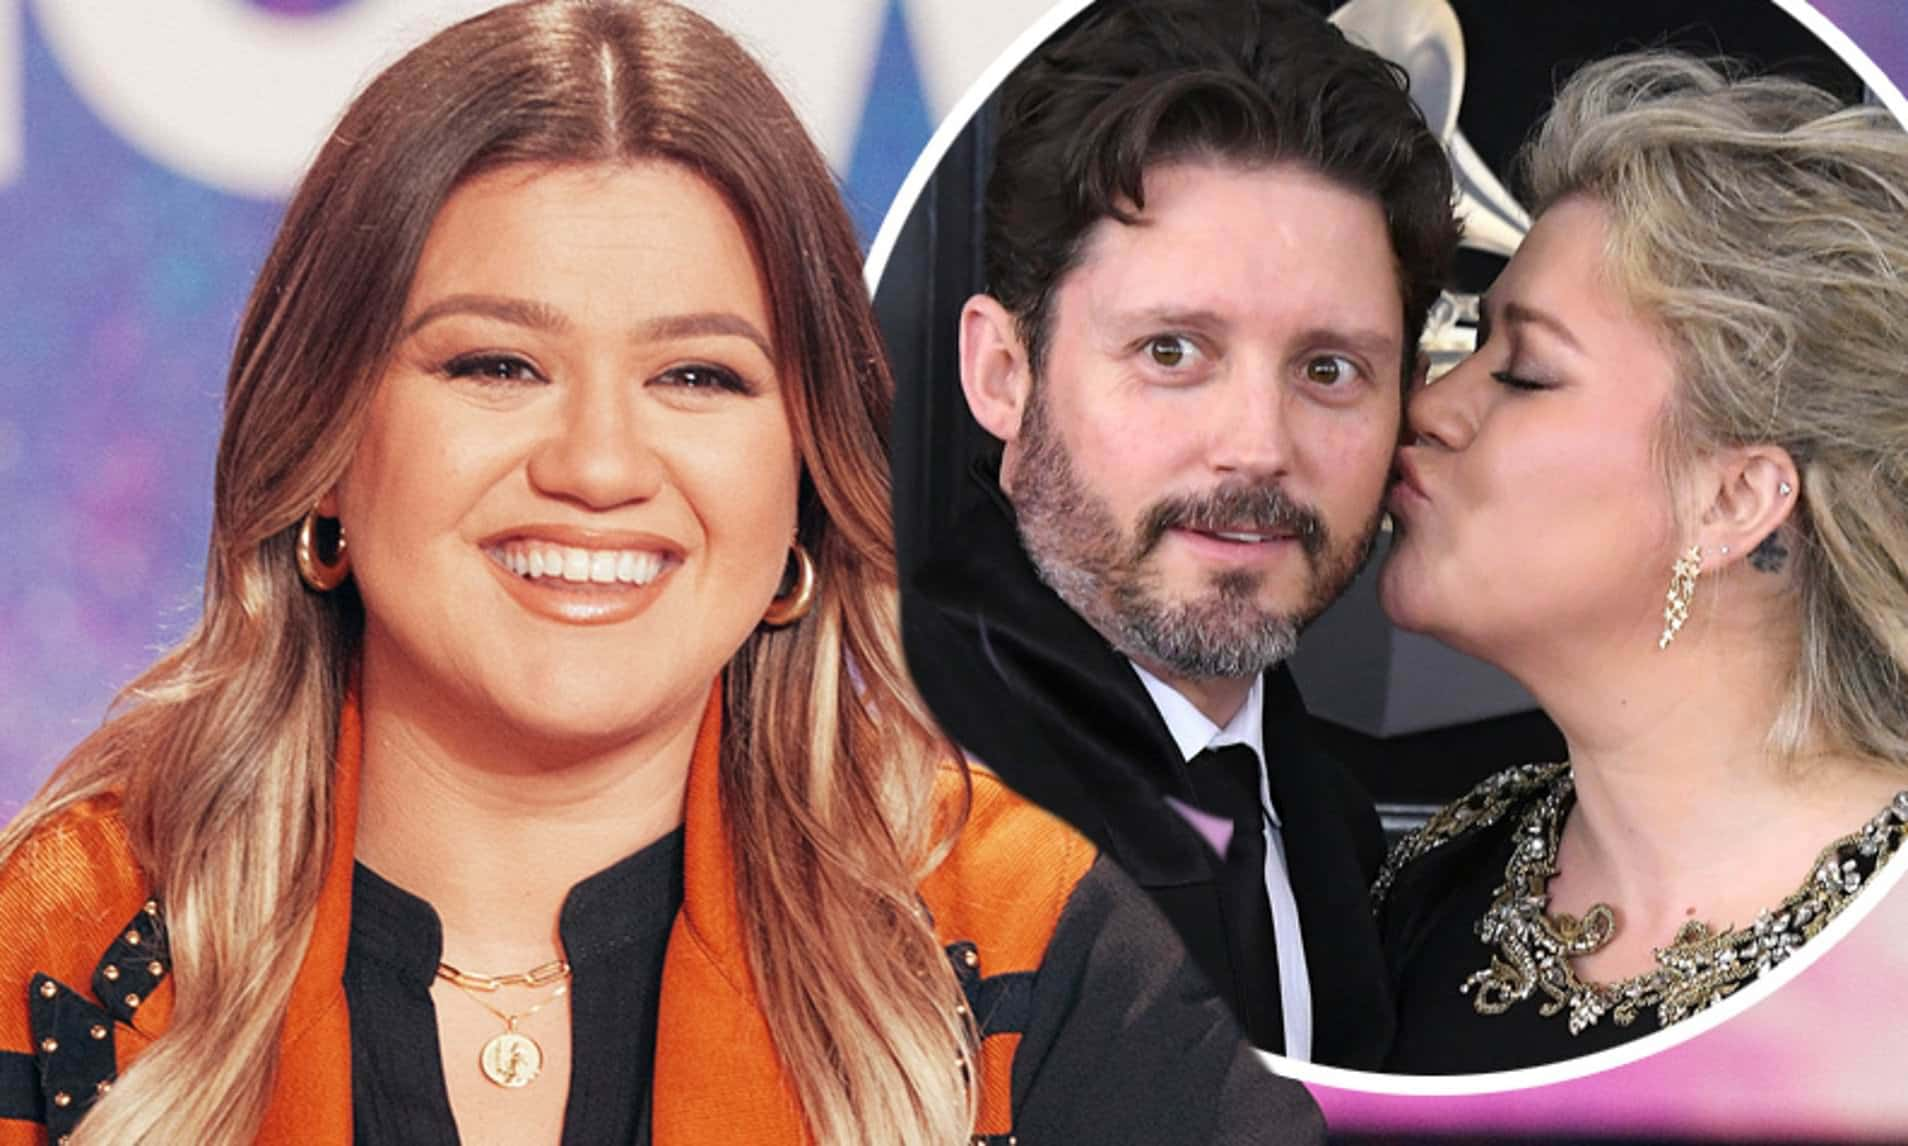 Kelly Clarkson Divorce Payout Details Revealed: She Will Pay $45K